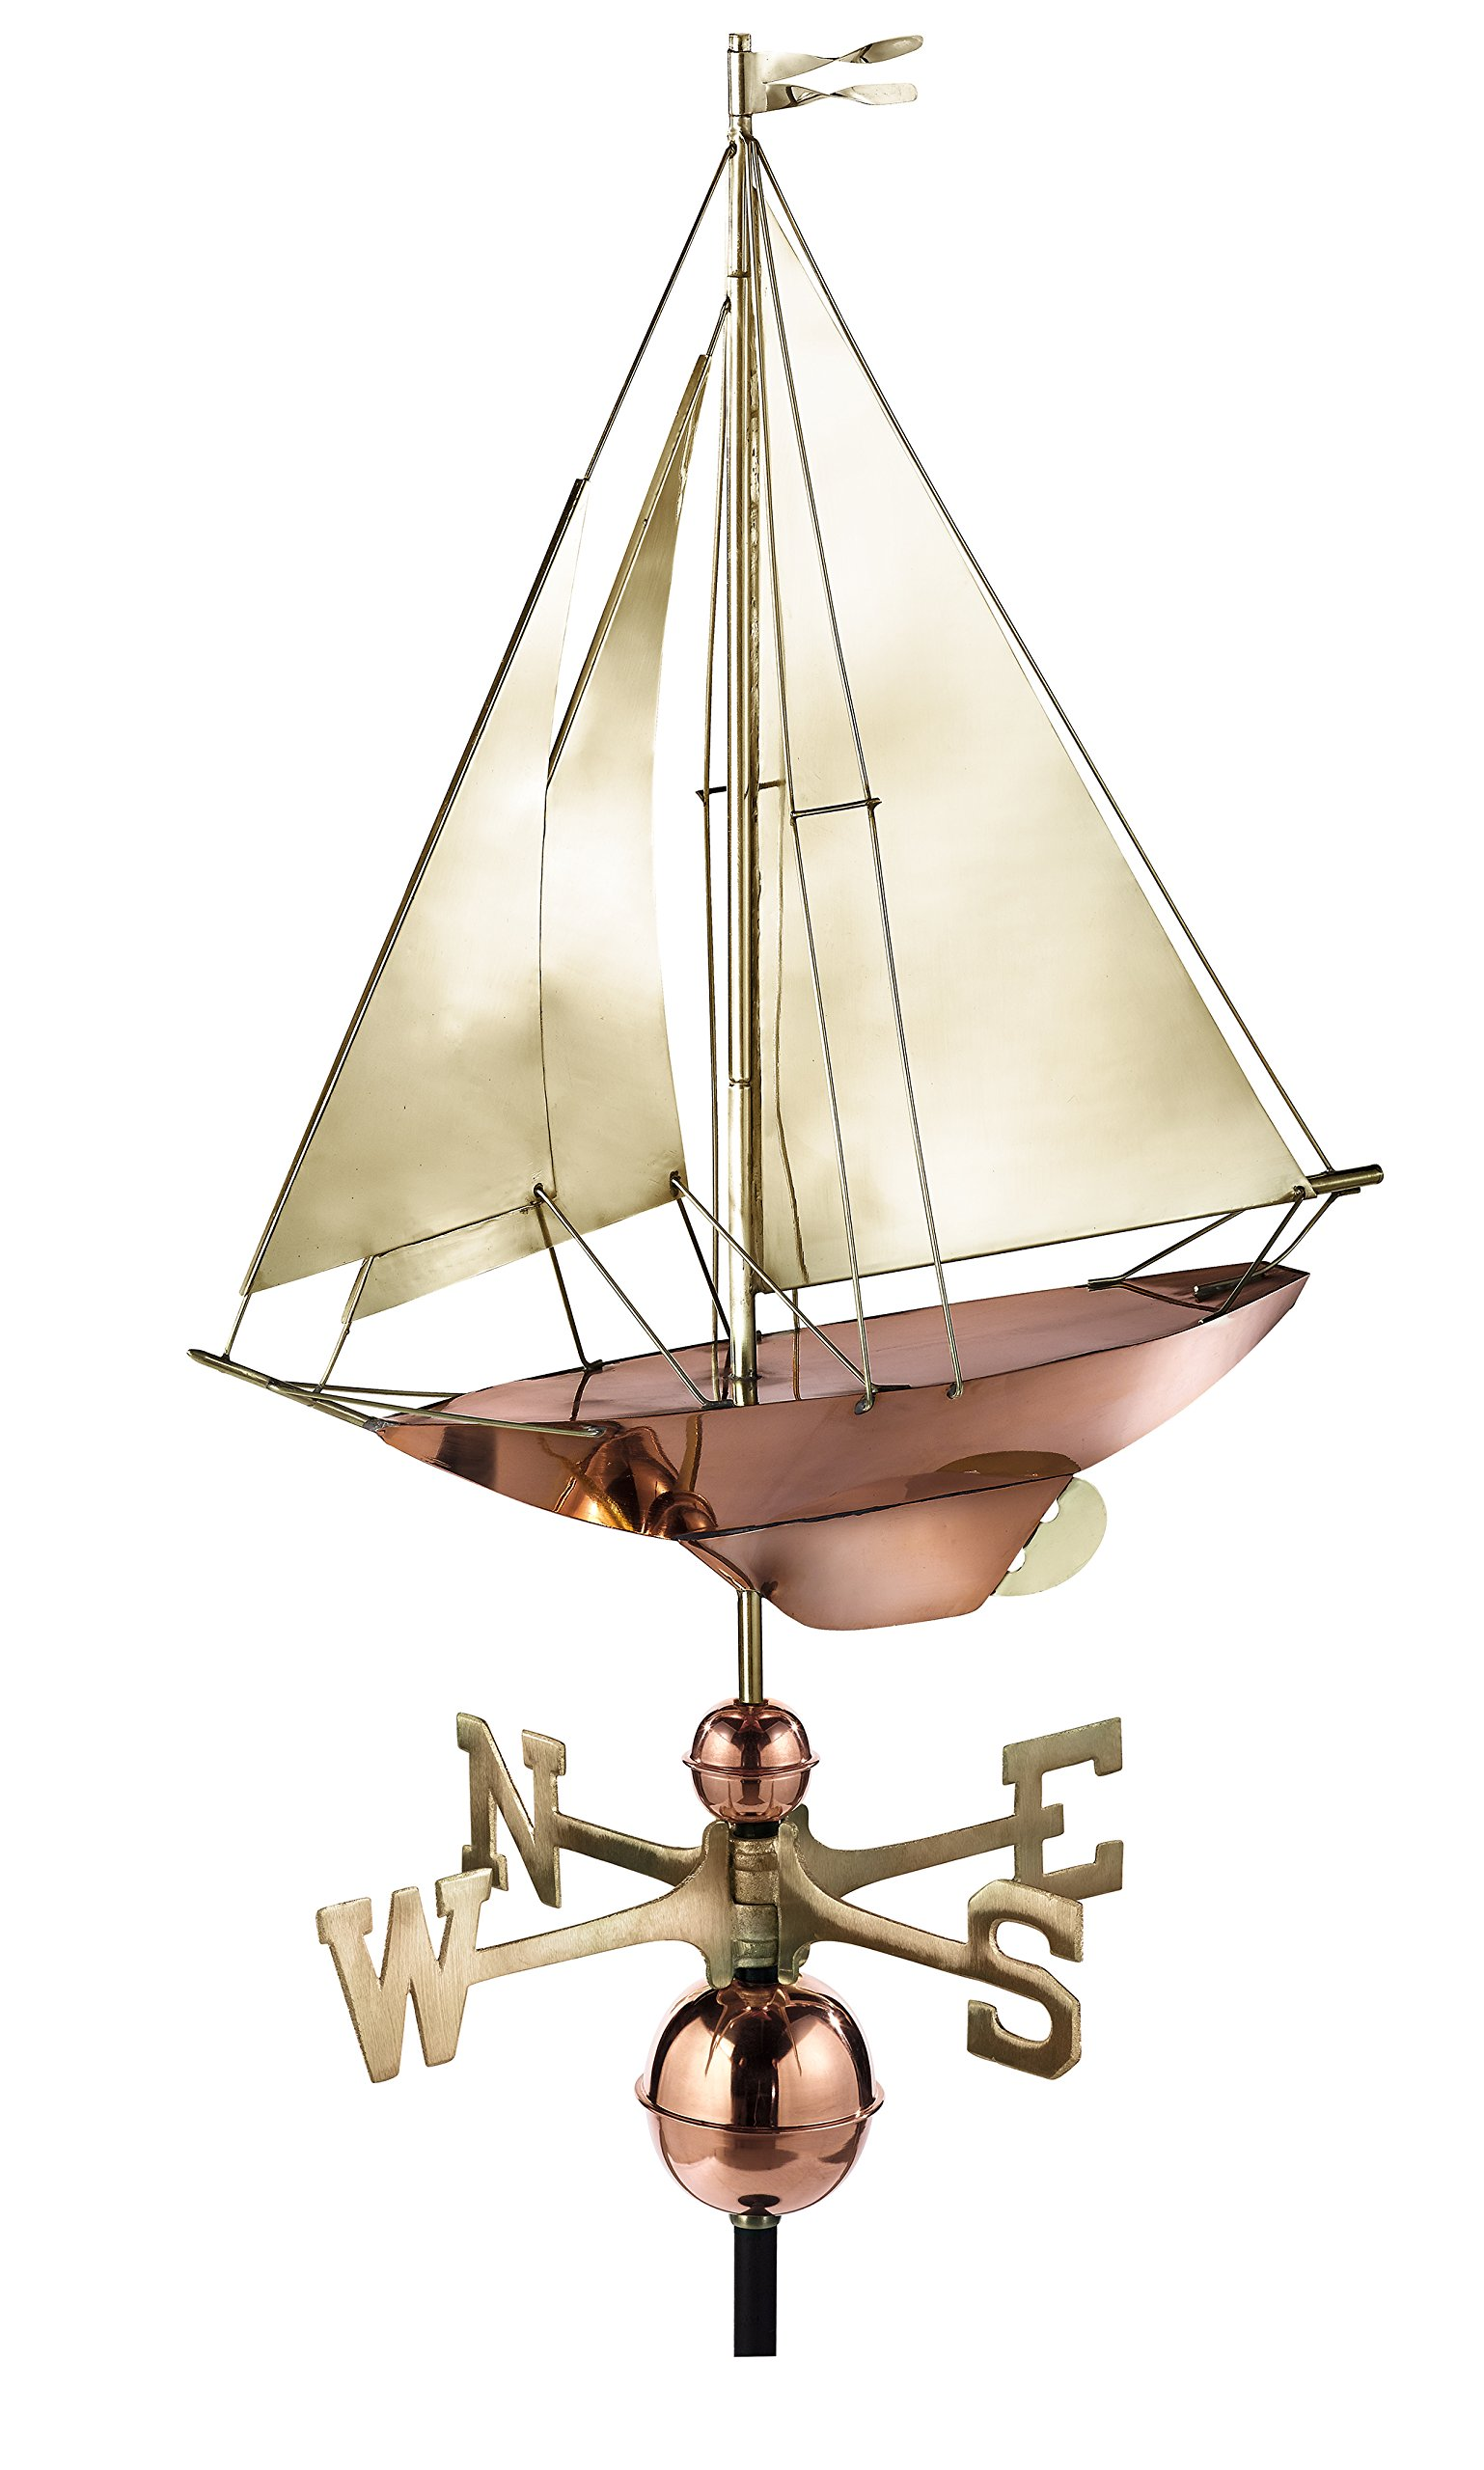 Good Directions Racing Sloop Weathervane, Pure Copper with Brass Sails (24 inch), Boat, Wind Vane